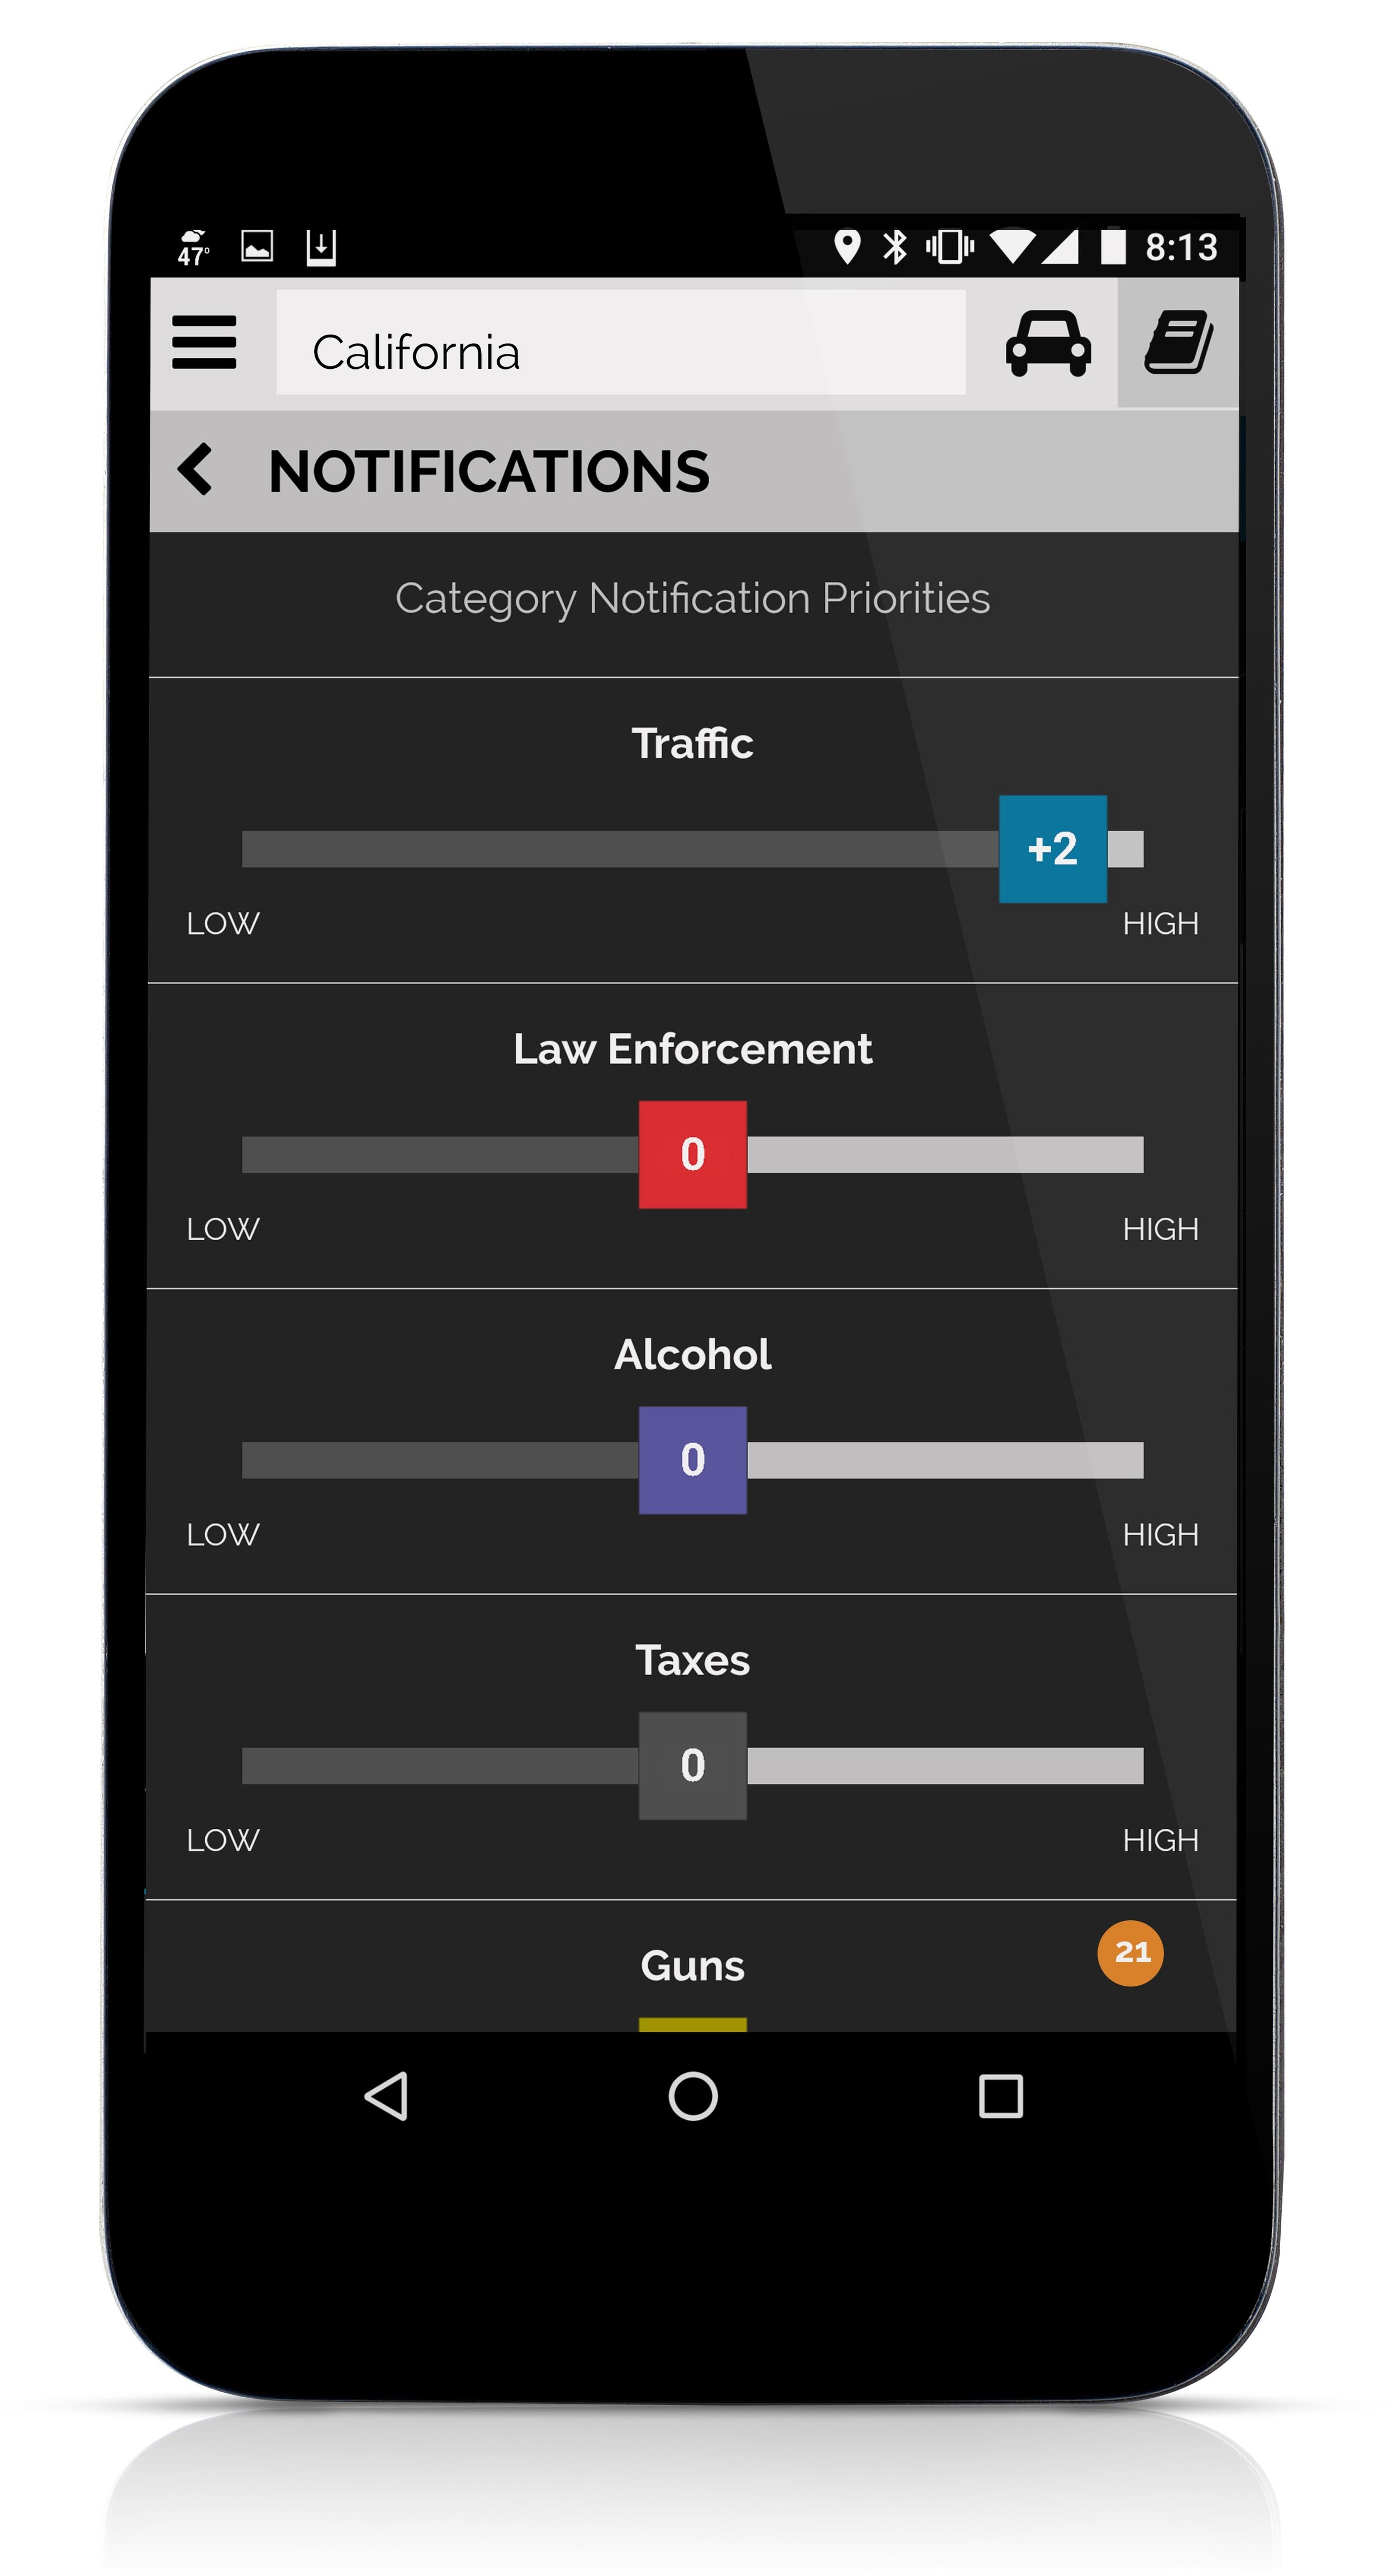 Priorities determine whether and how you receive notifications of law changes. When you first start using ATLAS you are asked to set notification priorities for each category. Afterwards, you can adjust all priorities within a category simultaneously at any time. ATLAS ignores laws of level 1 priority (out of 5) totally.